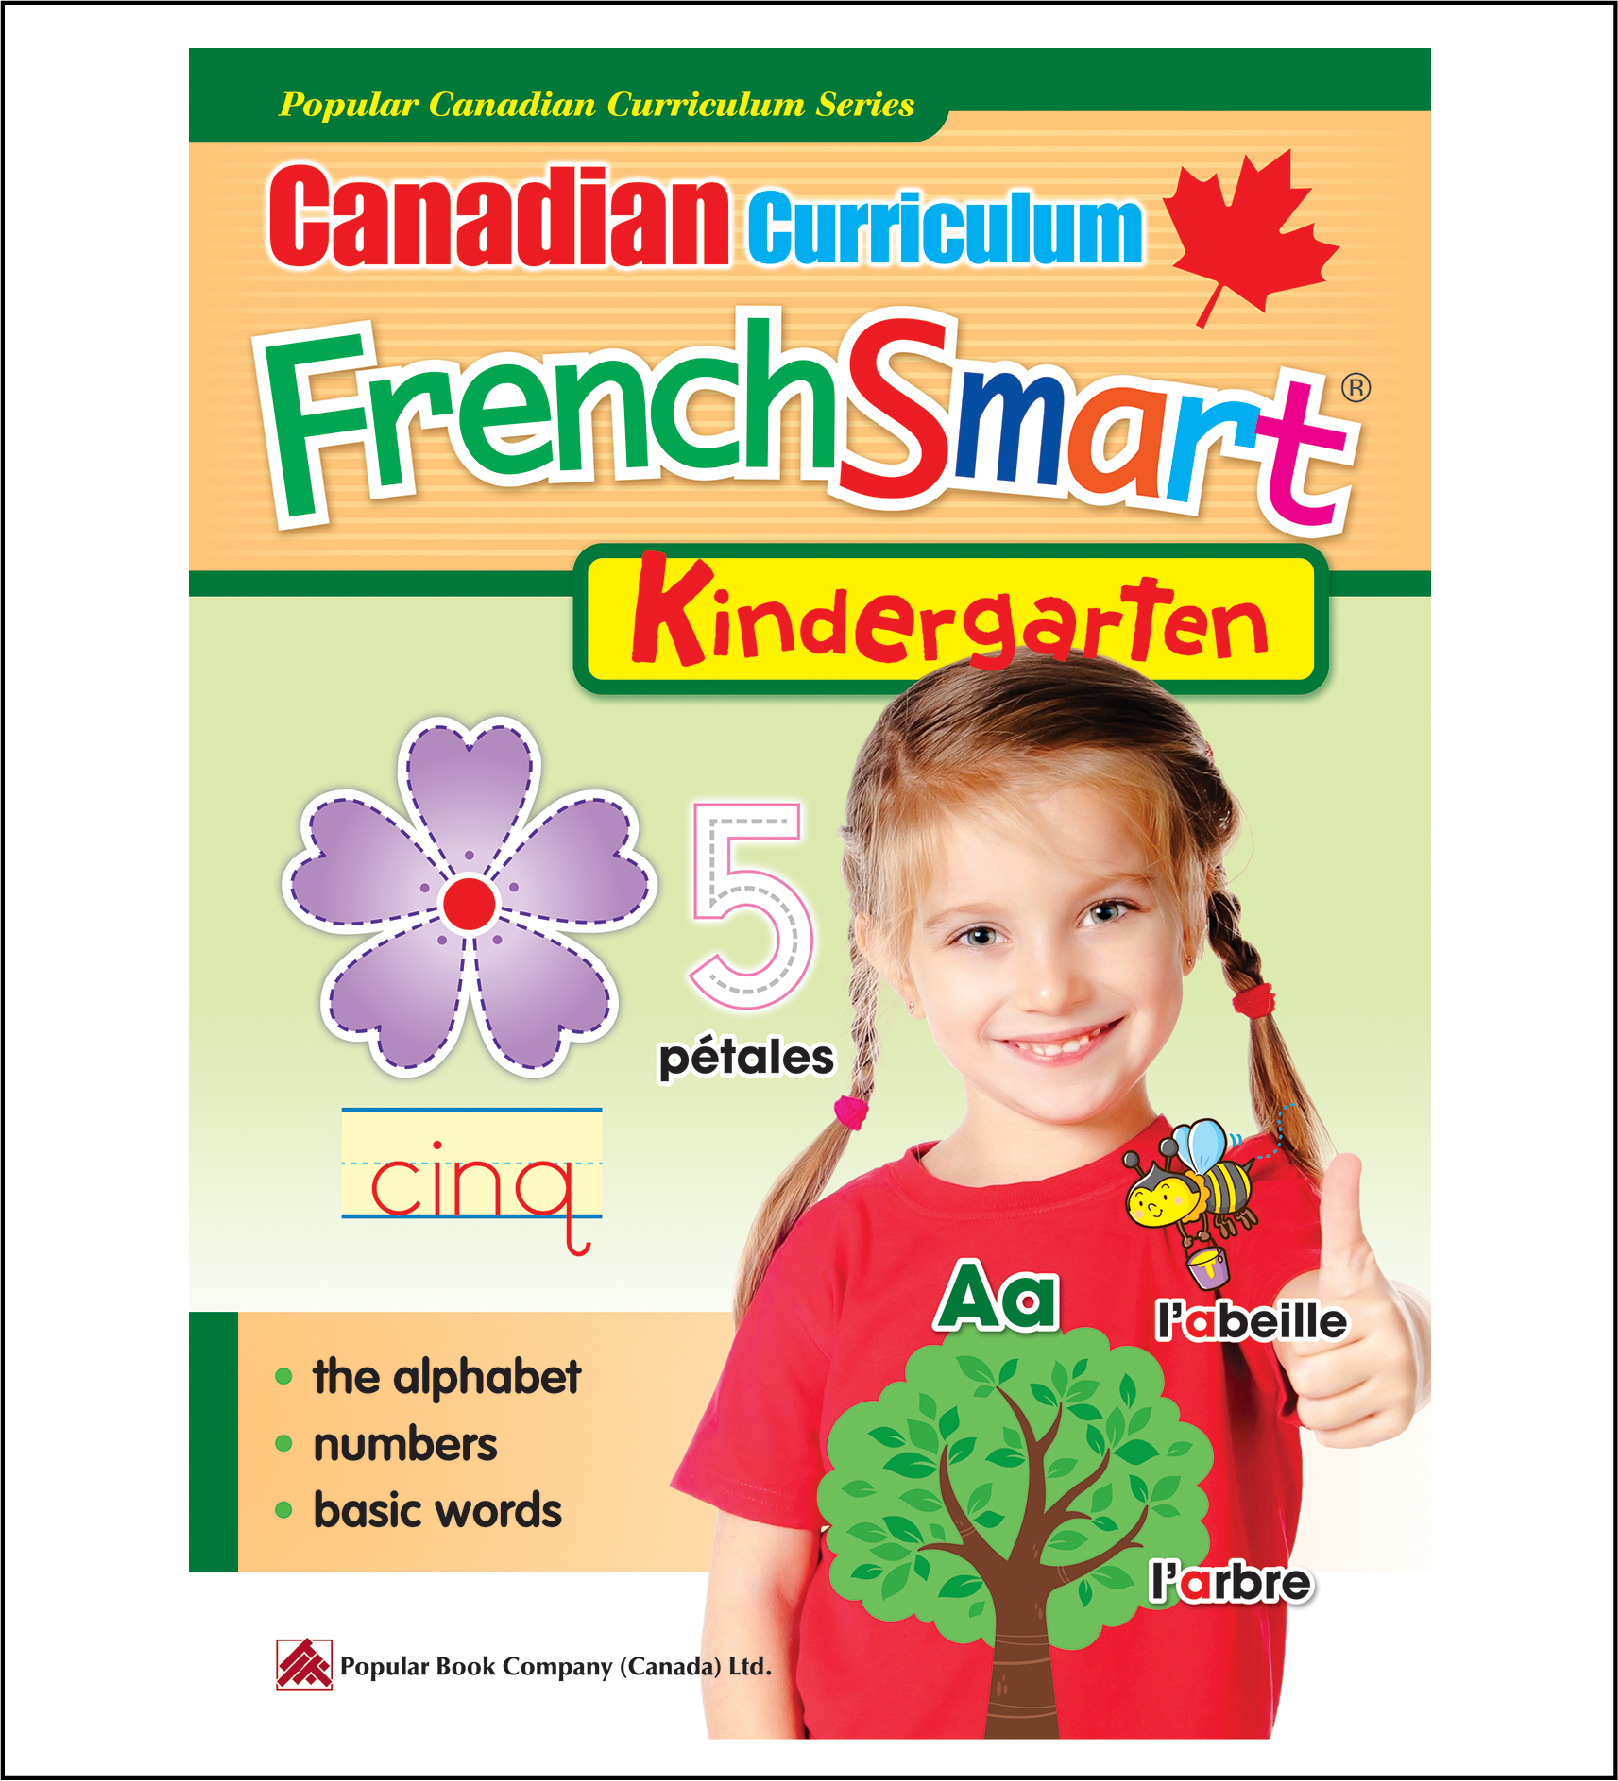 Canadian Curriculum FrenchSmart (Kindergarten)-0